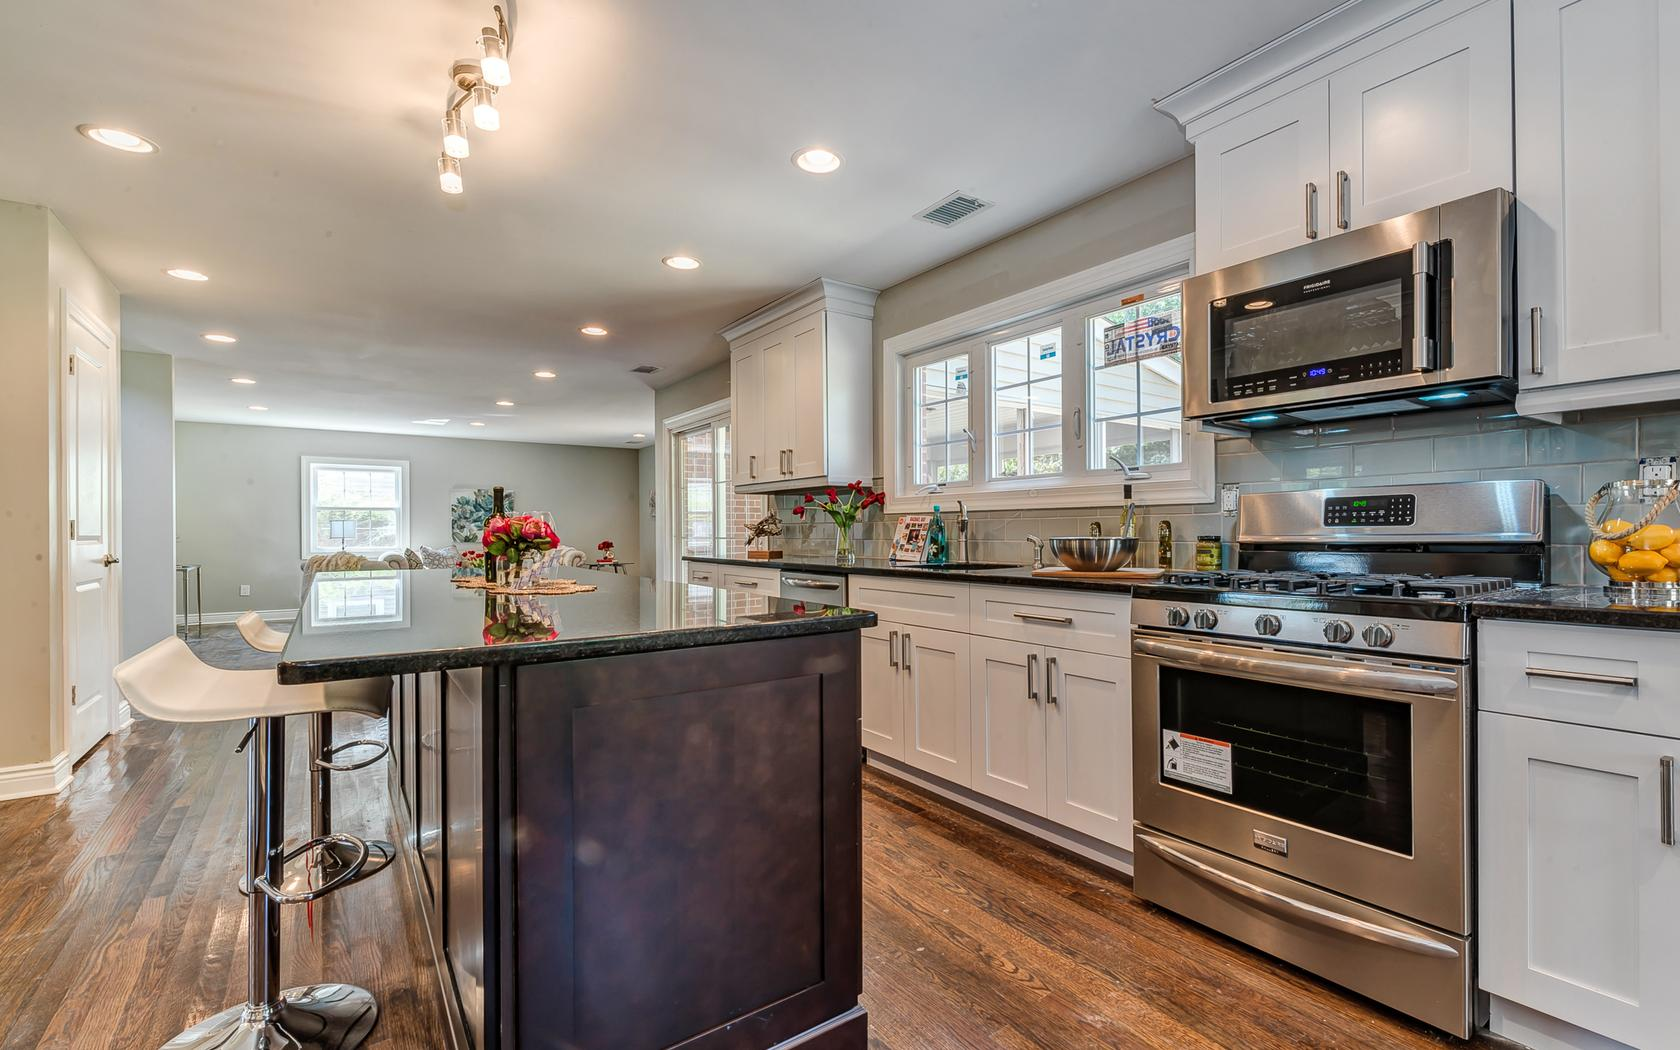 Kitchen cabinets northvale nj - View Full Gallery